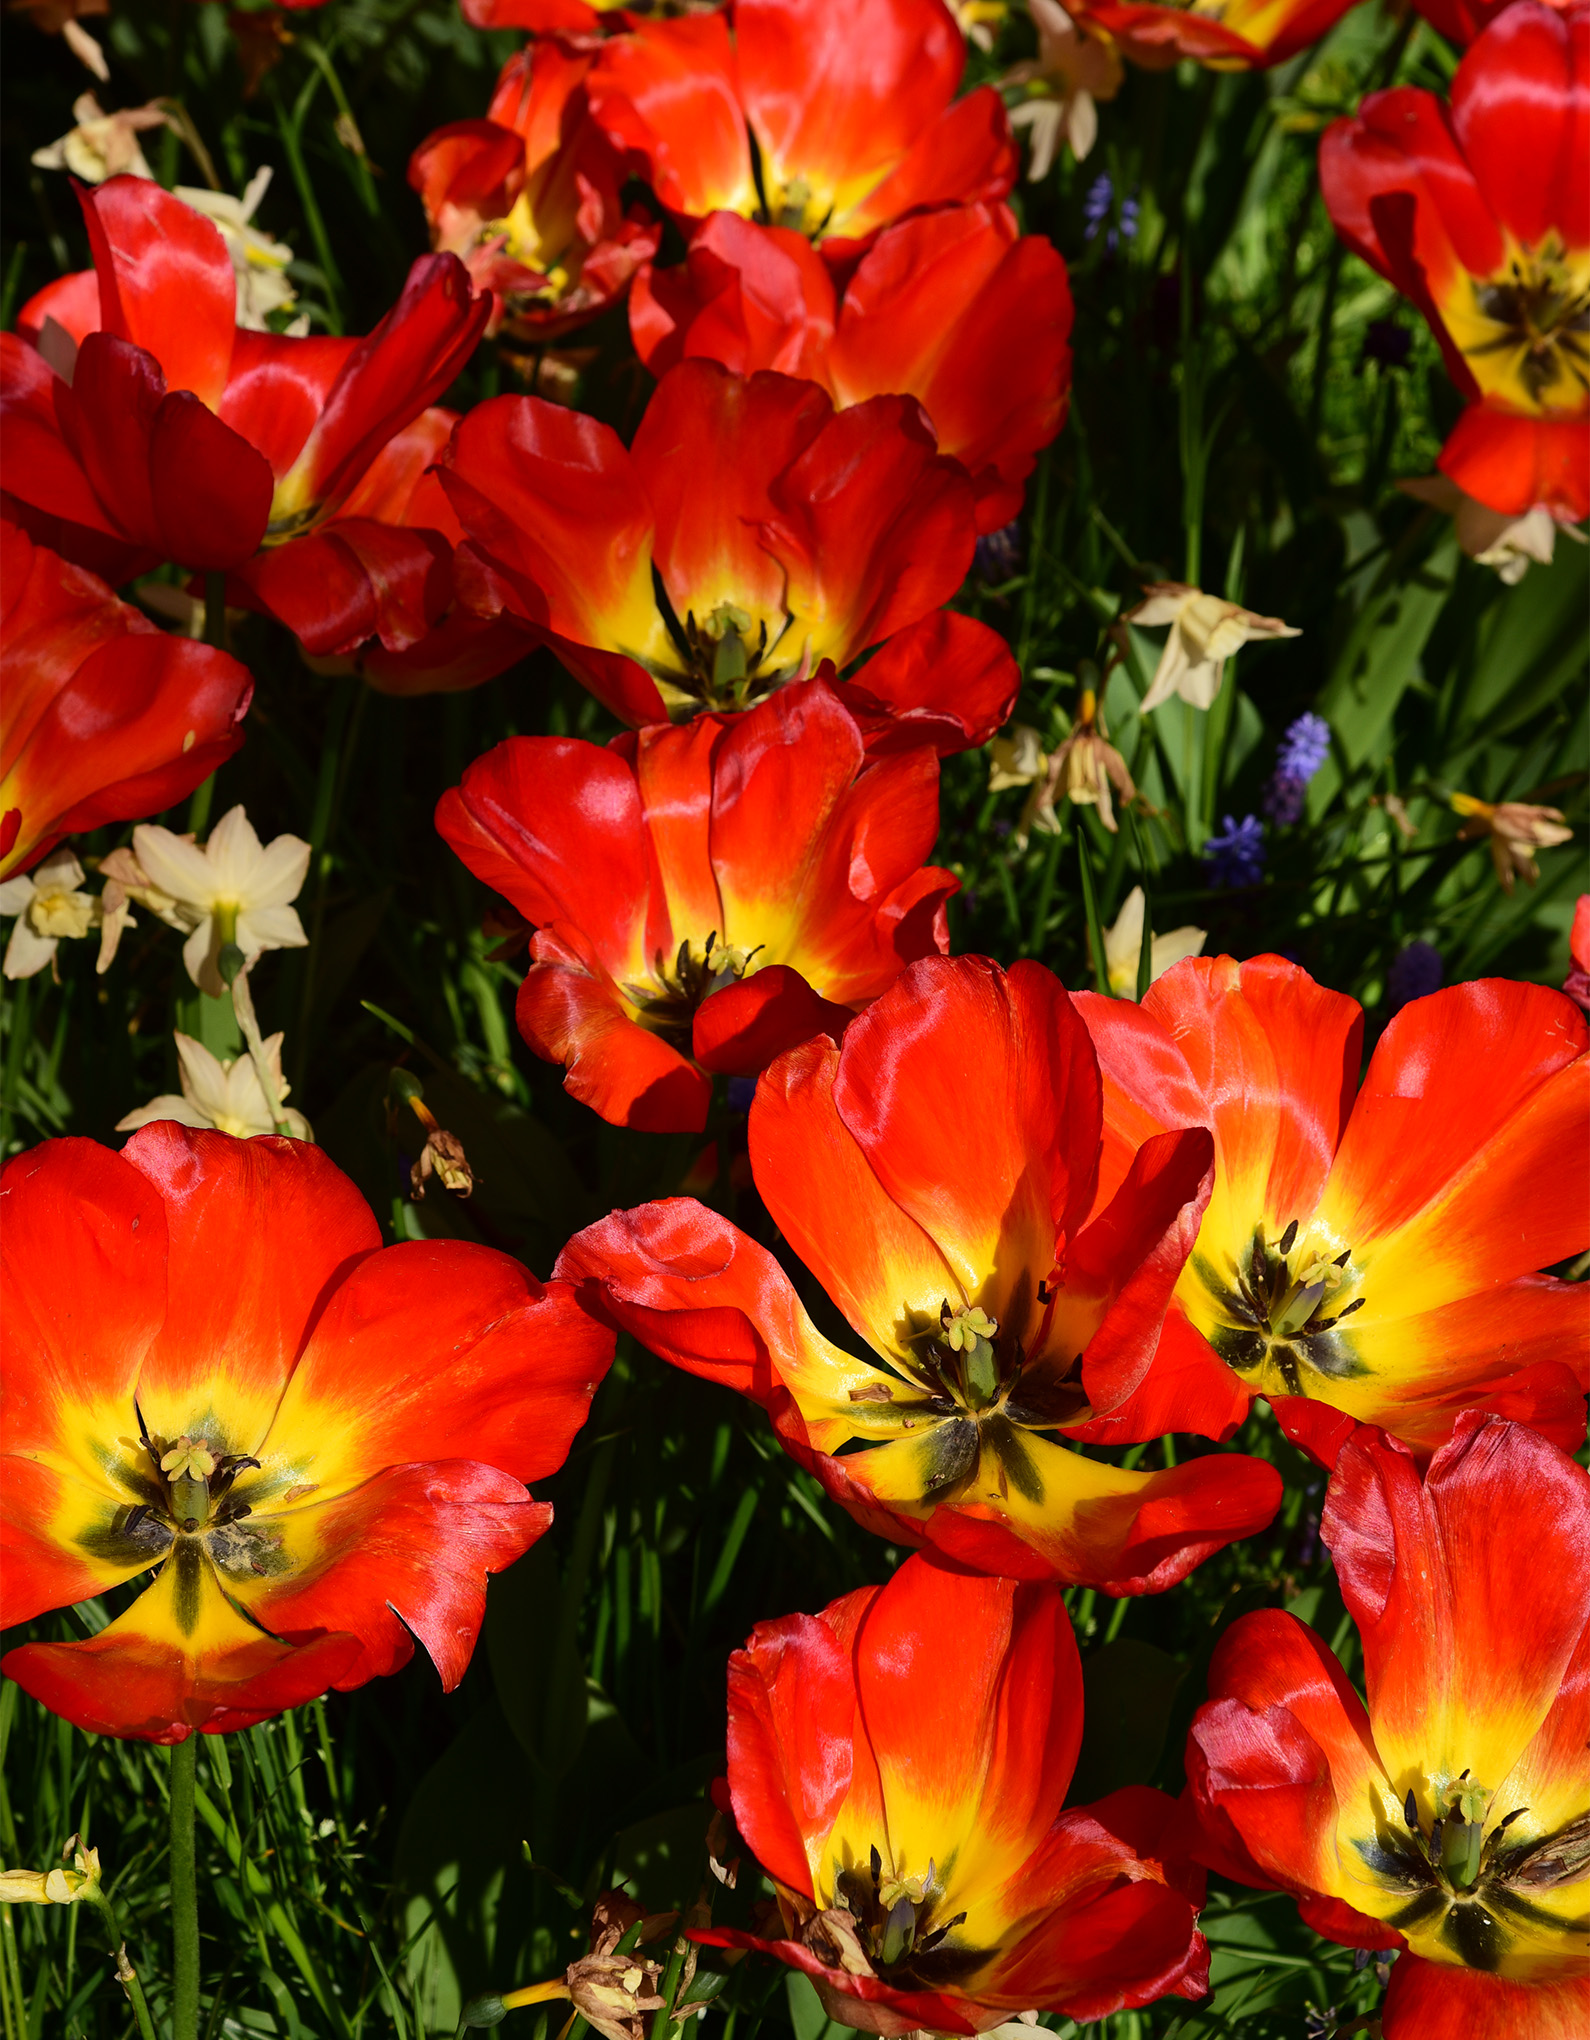 Tulips in full bloom at a square garden in Amsterdam